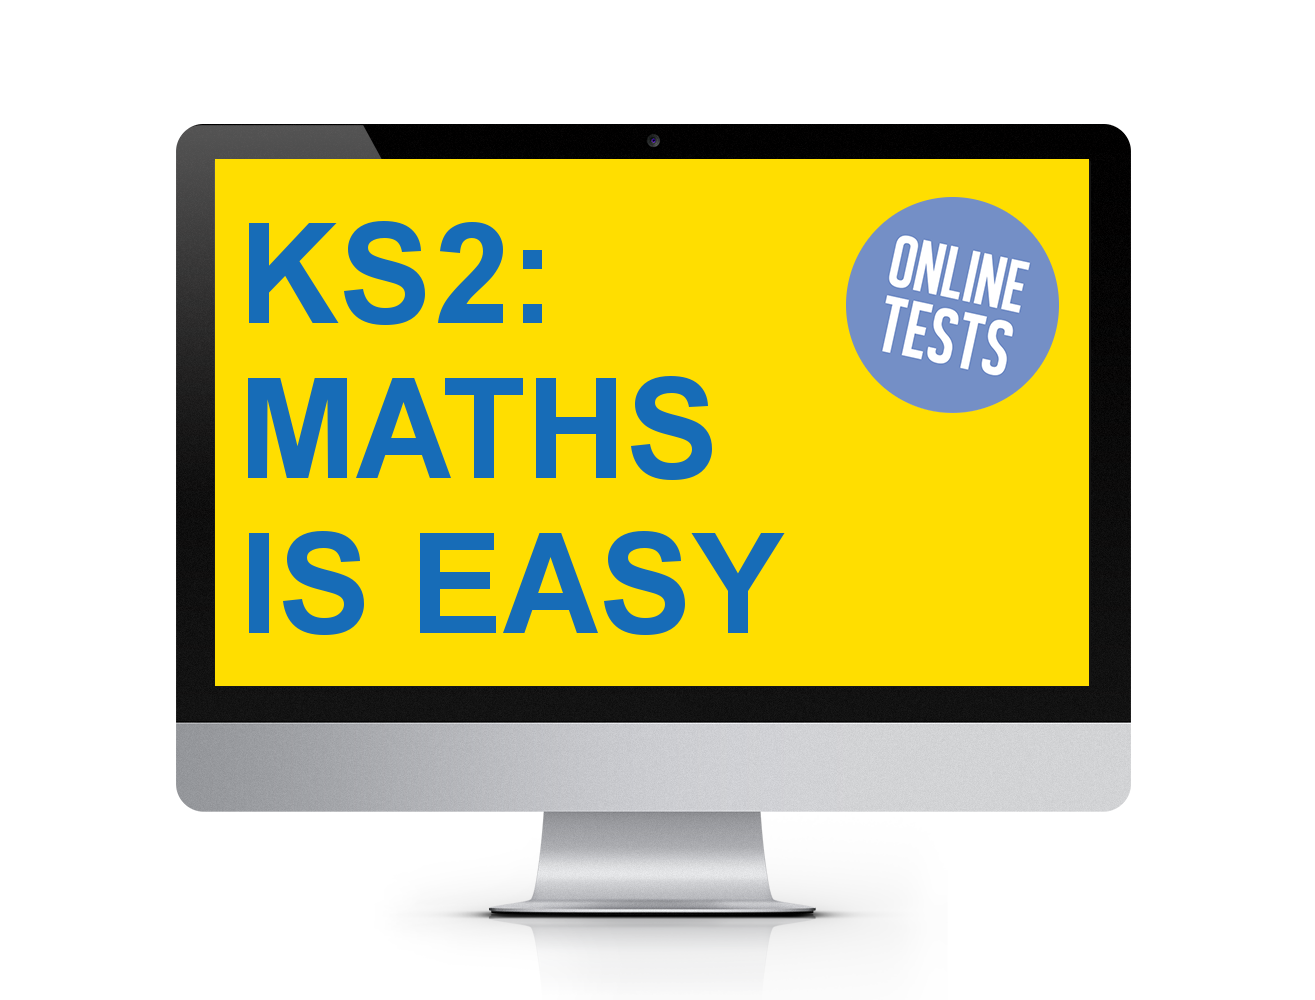 english sats papers ks2 online Ks2 year 6 level 6 maths sats papers (these have now been scrapped, but are useful for extension work and 11+ preparation) ks2 maths tests can be undertaken online at wwwcoolcleverkidscouk.